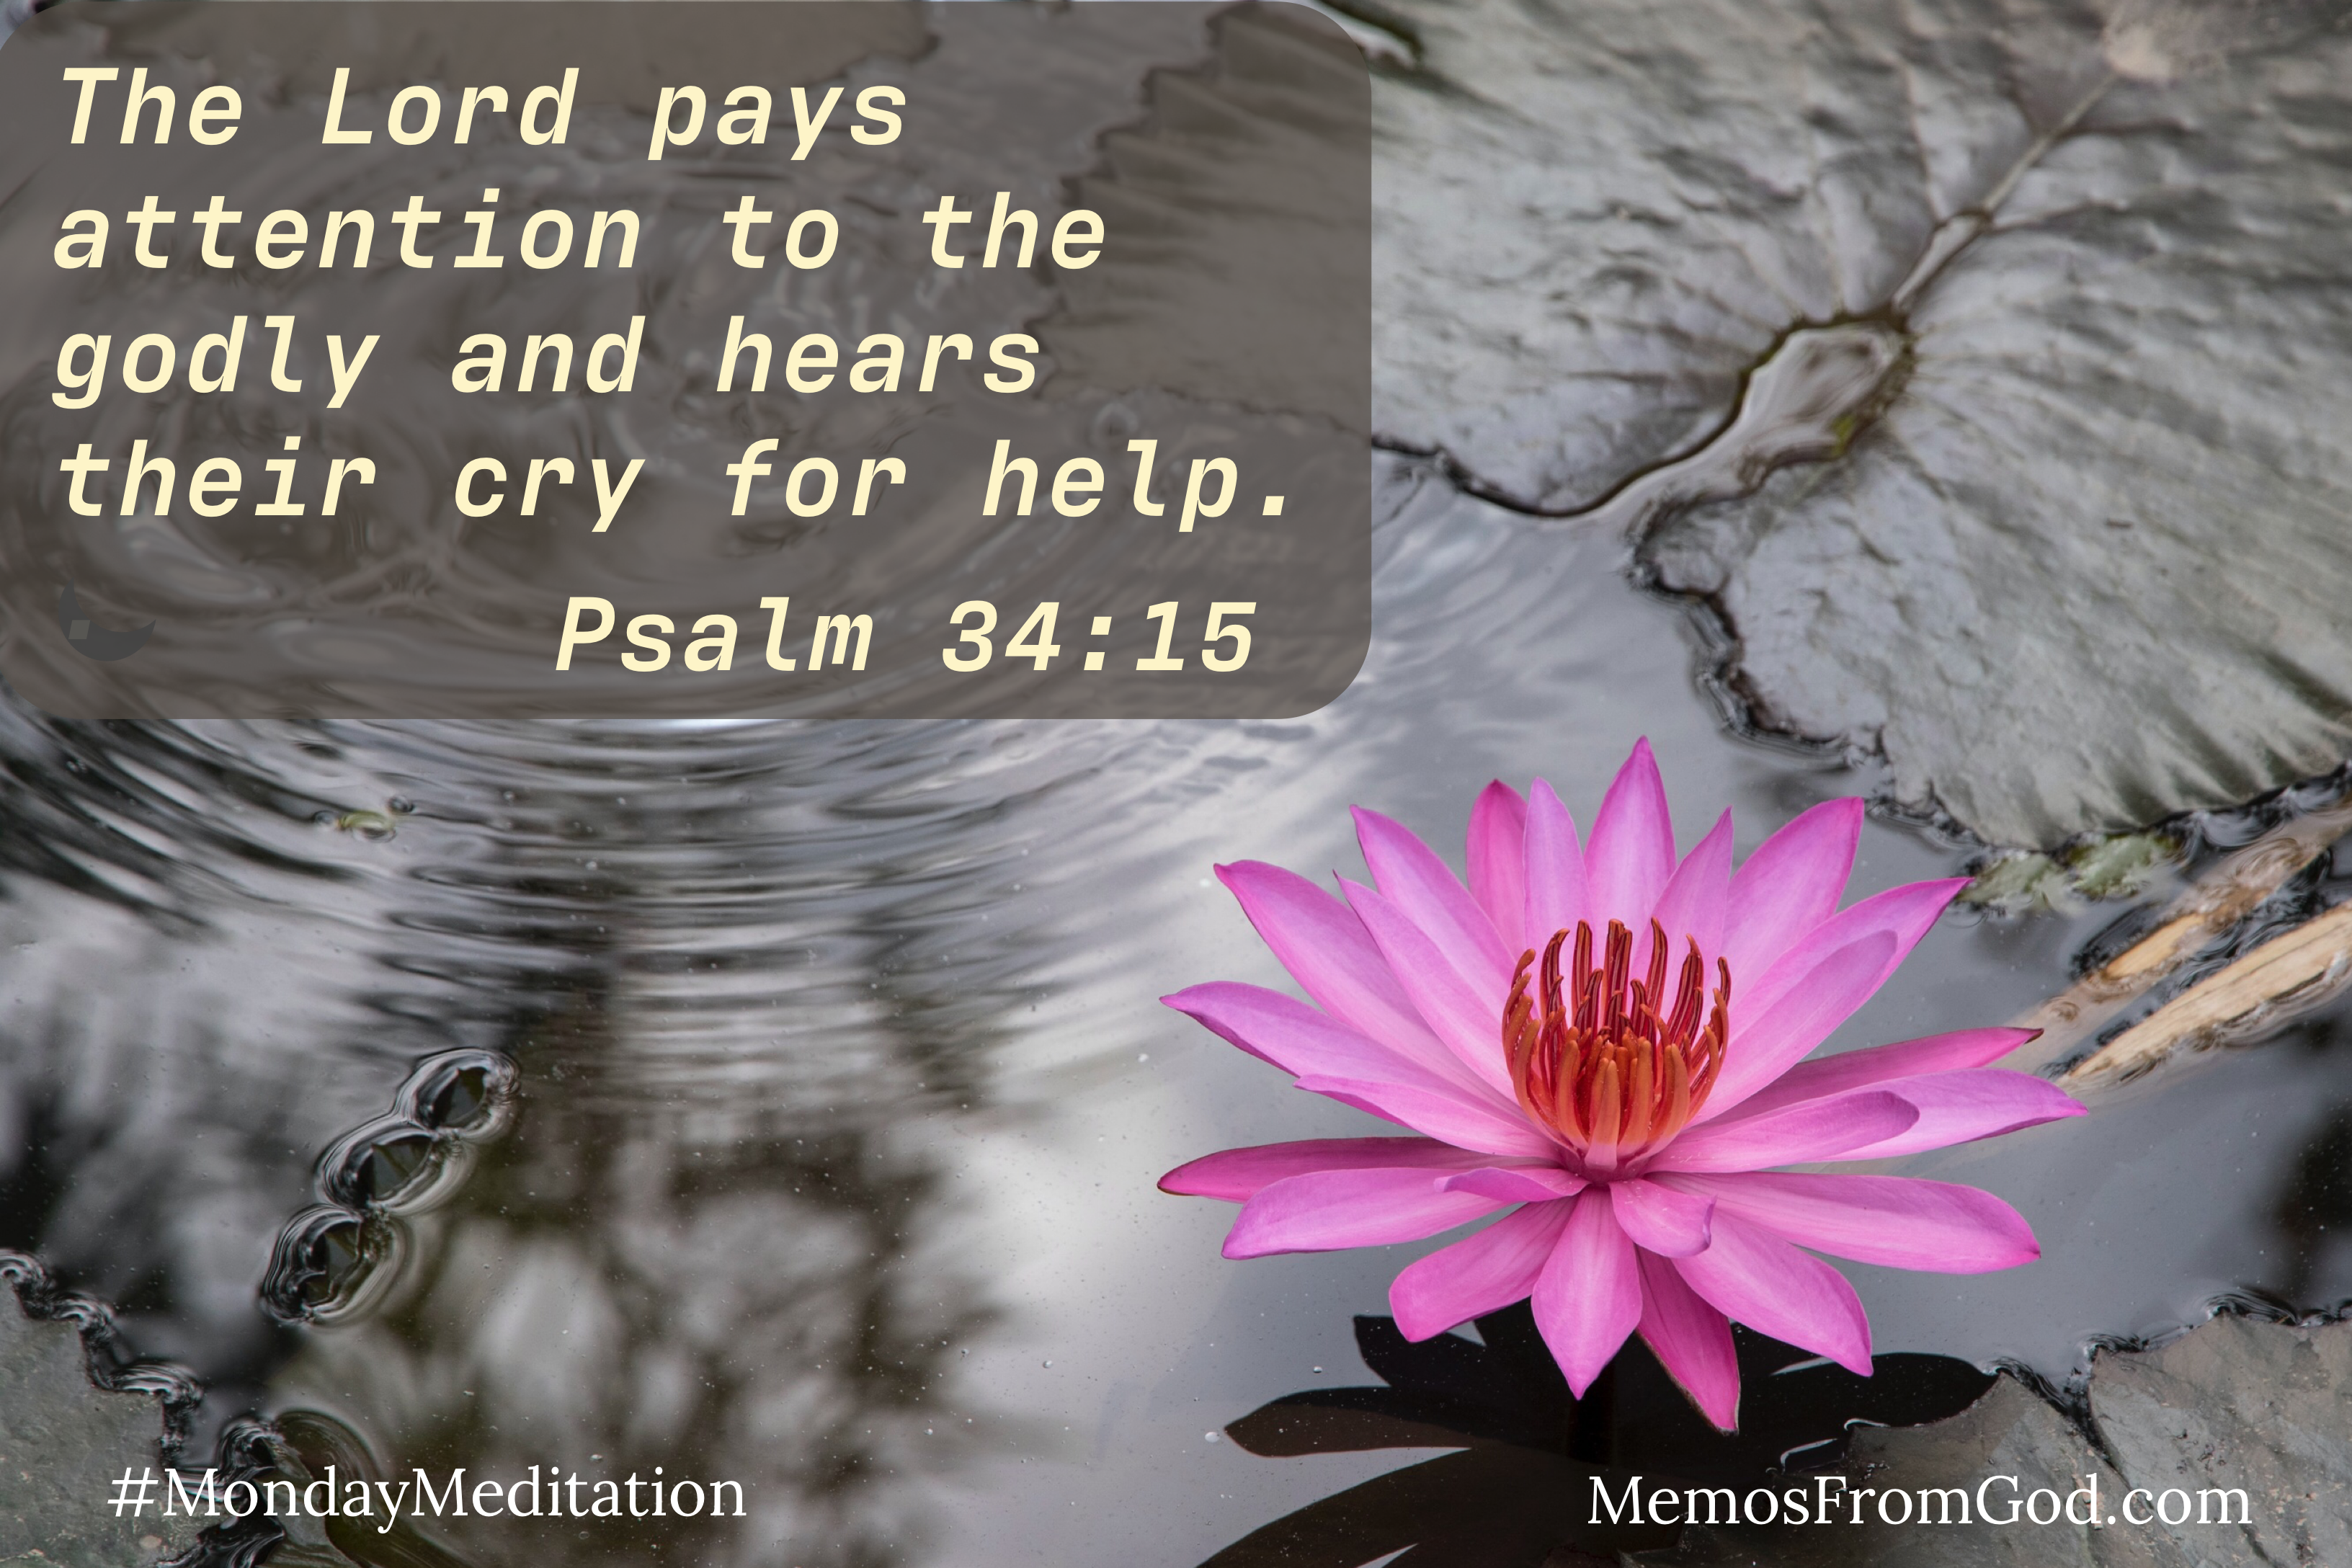 A deep pink water lily in grey, turbulent water. Caption: The Lord pays attention to the godly and hears their cry for help. Psalm 34:15